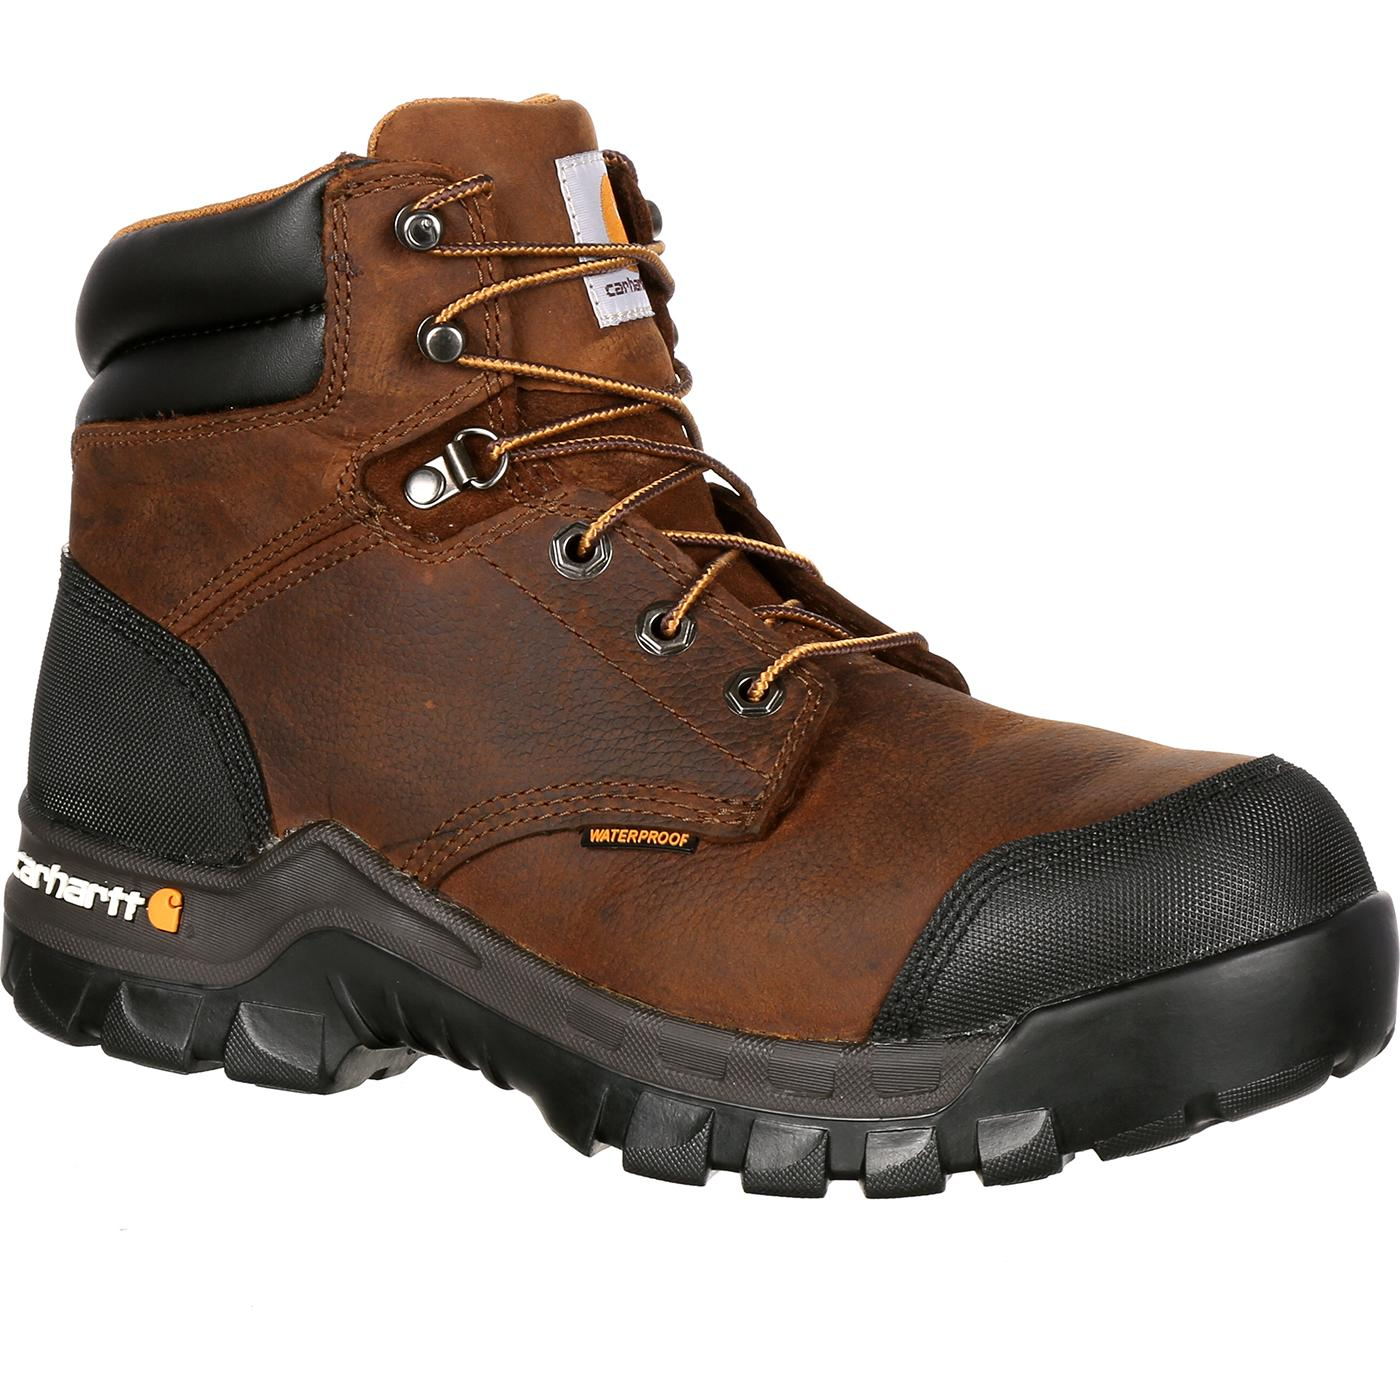 Lehigh also offers its CustomFit business, which helps contractors and construction companies create custom websites offering industrial safety footwear to its employees. With Lehigh Outfitters online coupons, you can keep some money in your wallet while you shop for heavy-duty workwear.